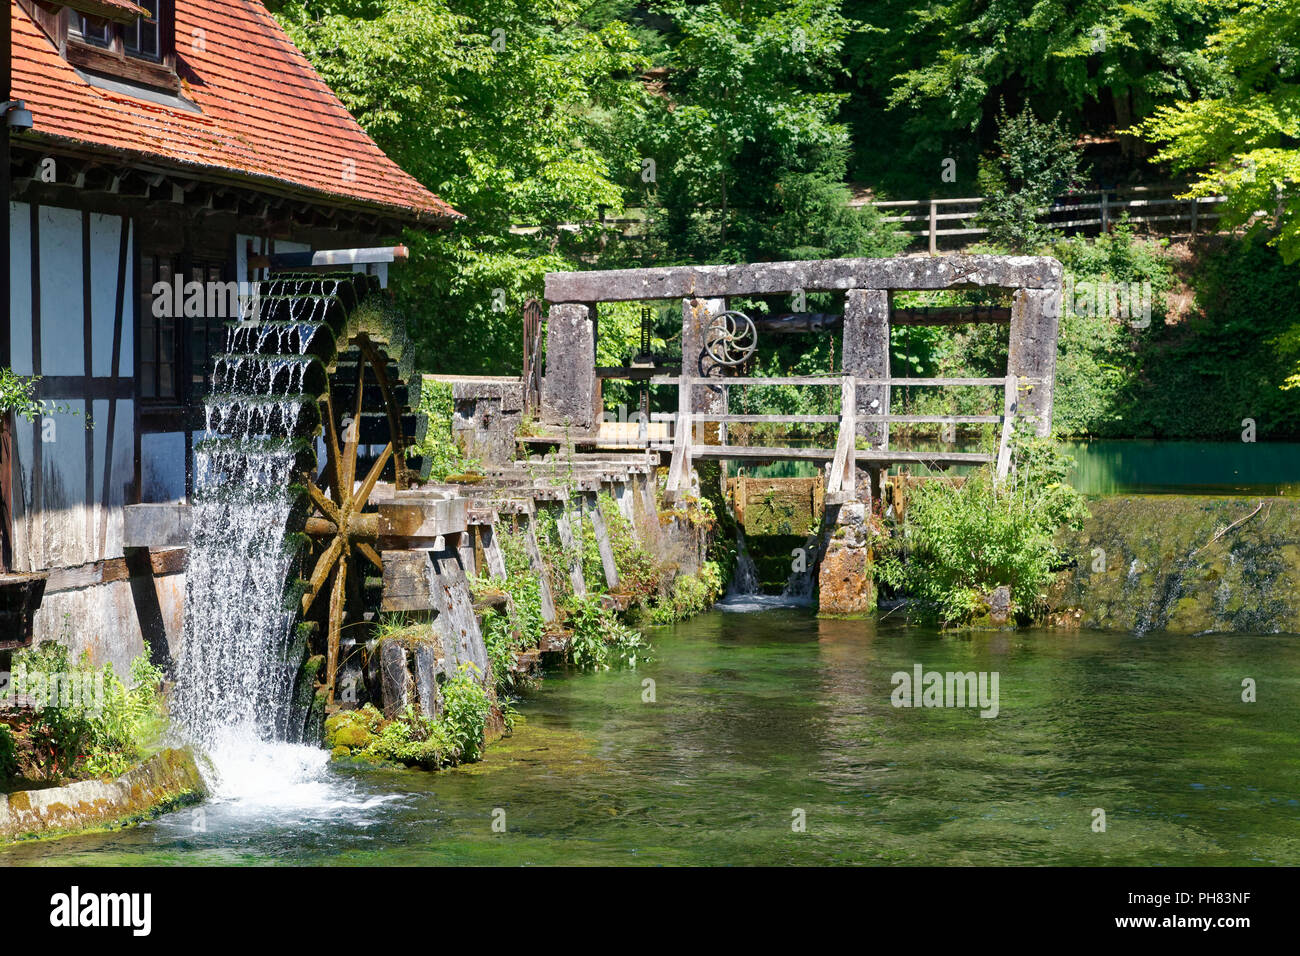 Historical hammer mill at the Blautopf, karst spring, water wheel, signal tower, Blaubeuren, Alb-Donau-Kreis, Swabian Alb Stock Photo